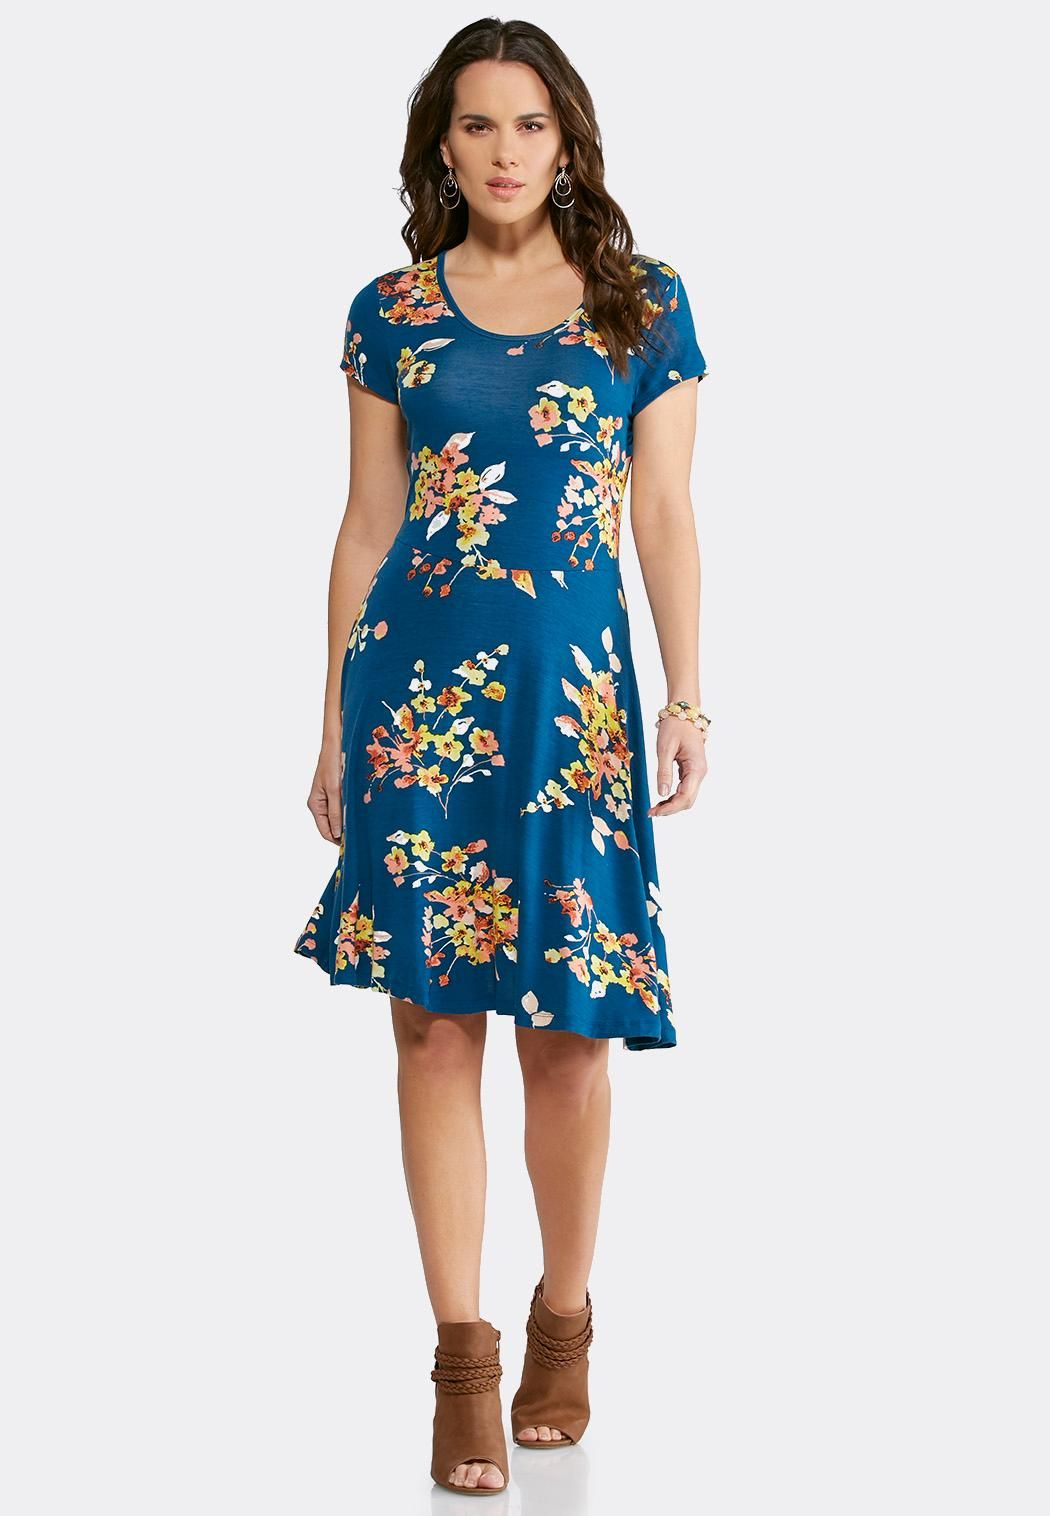 e7b9ac9dad28 Blue Floral Fit And Flare Dress Junior/Misses Cato Fashions ...